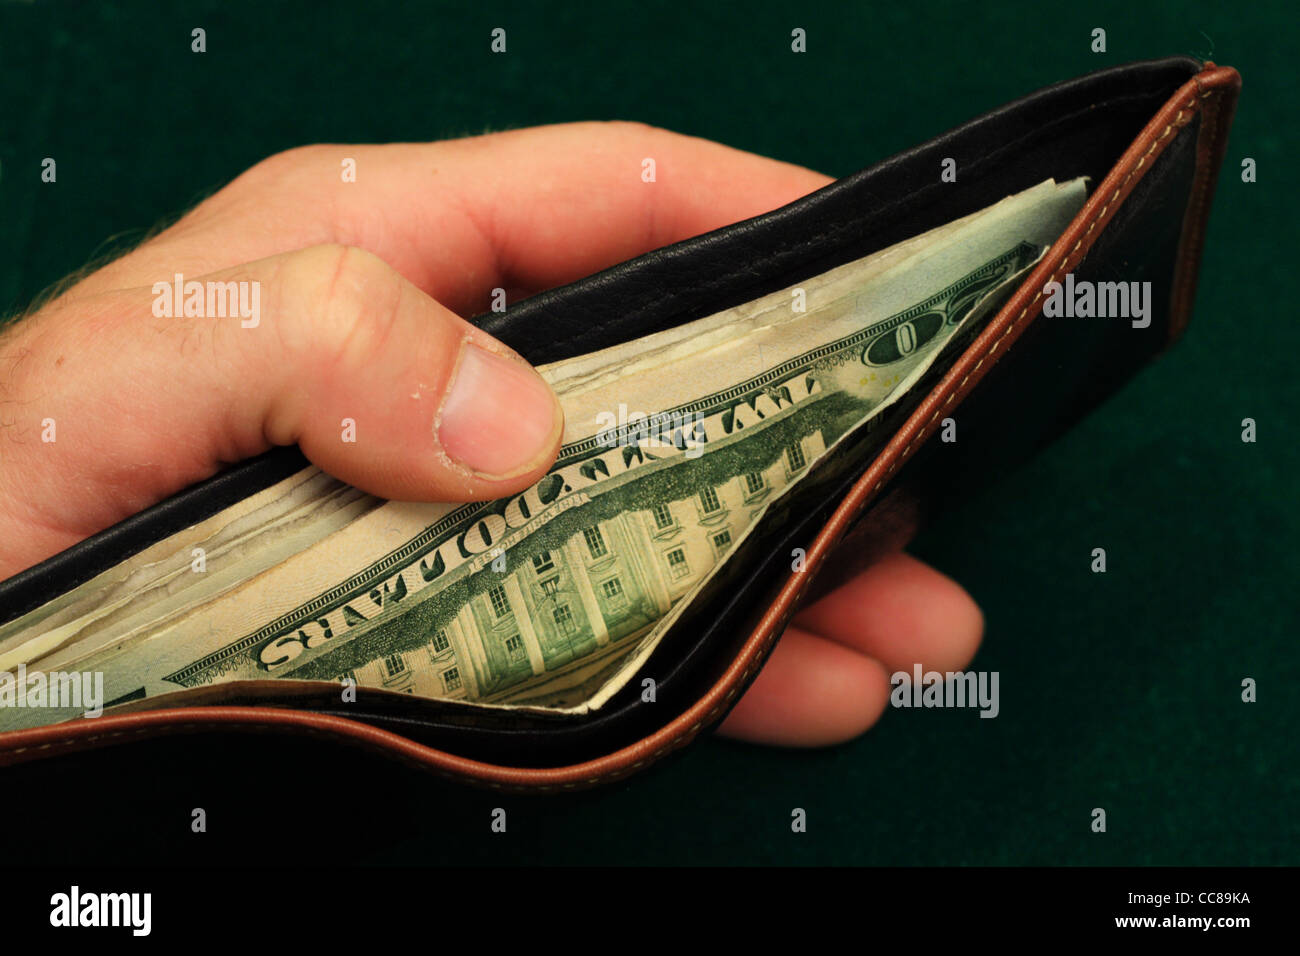 a man's hand holds a leather wallet filled with US bills open on a green background - Stock Image